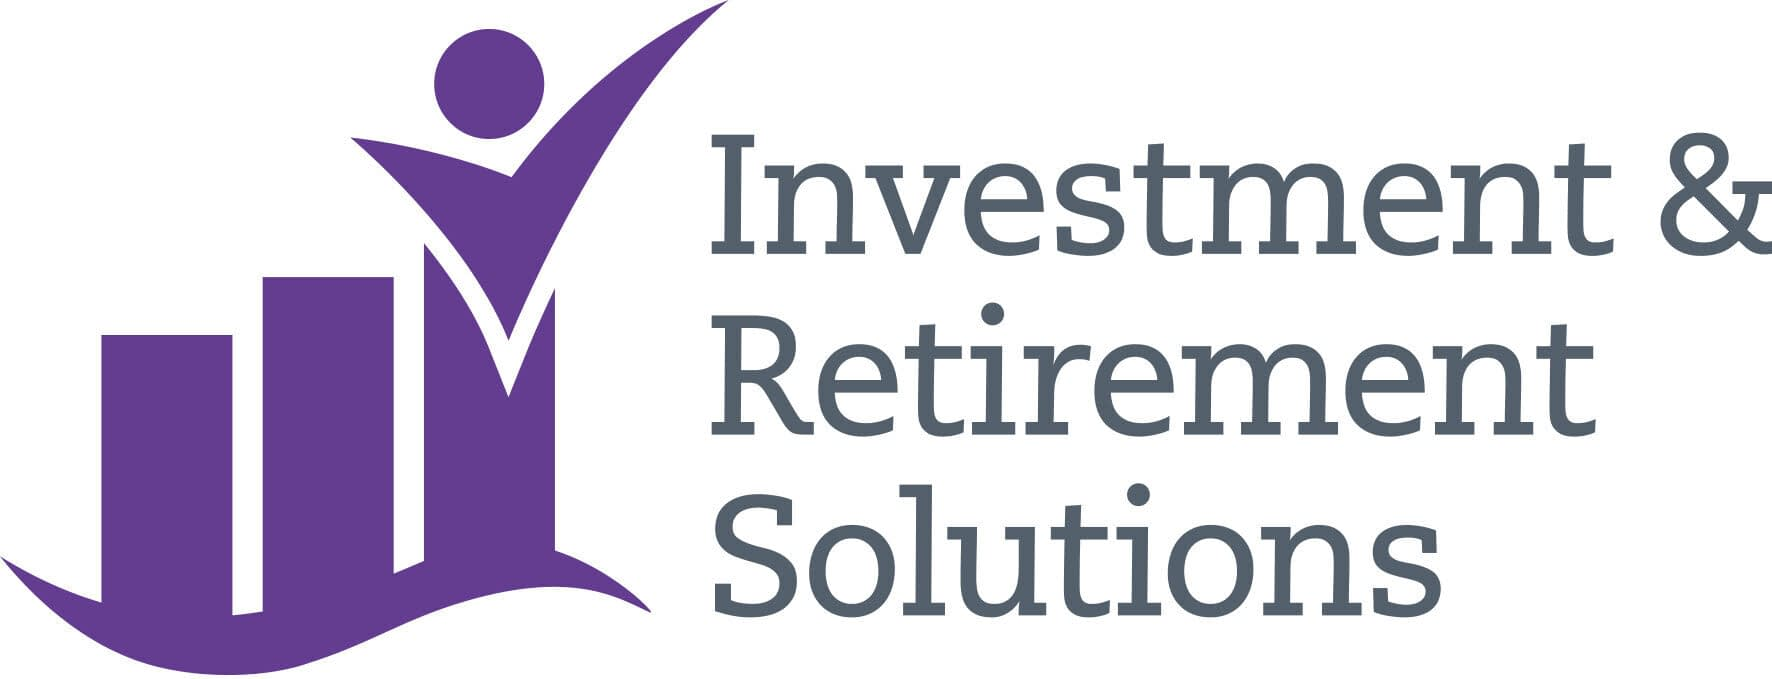 Investment & Retirement Solutions Ltd